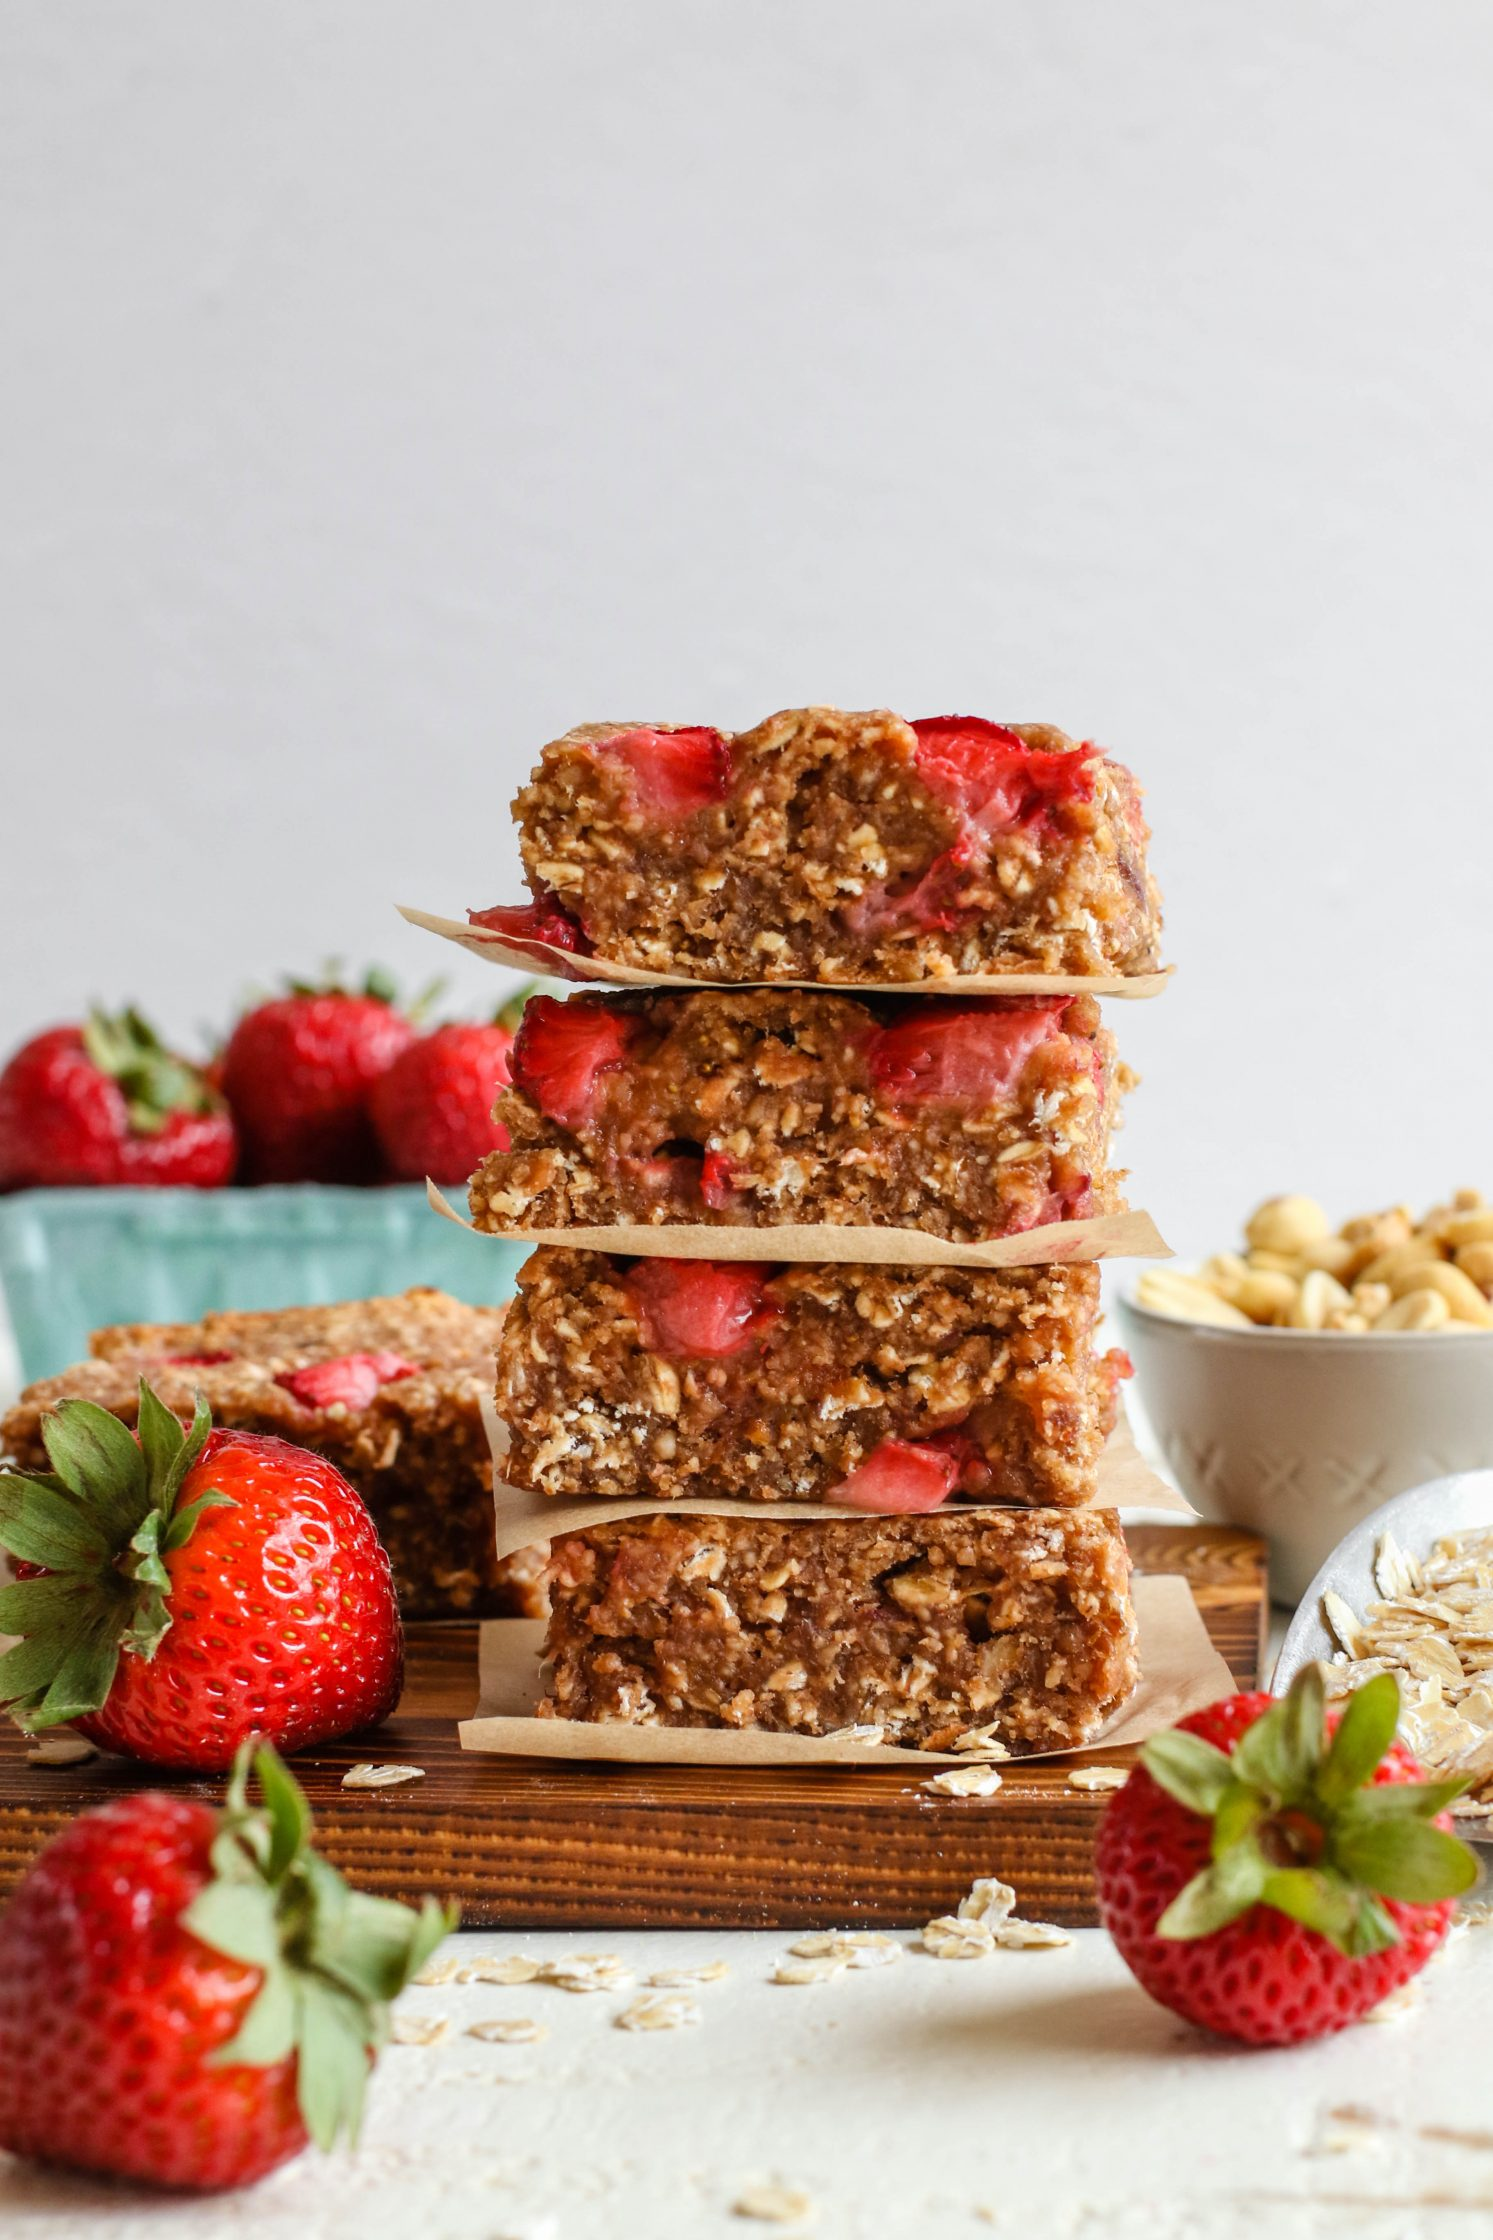 PB&J Baked Breakfast Bars by Flora & Vino